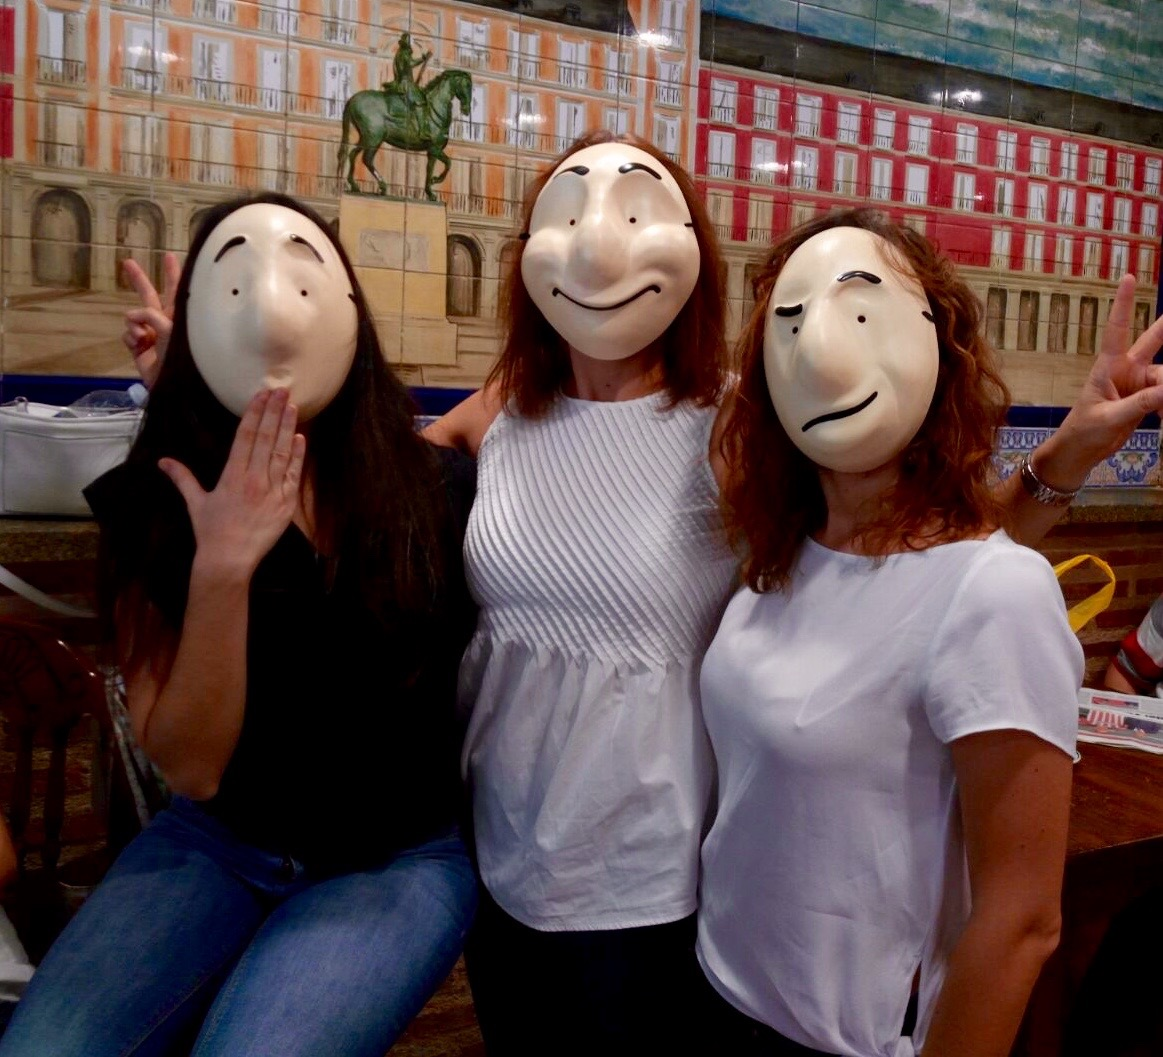 Secondary school teachers with laval masks (Trestle masks)